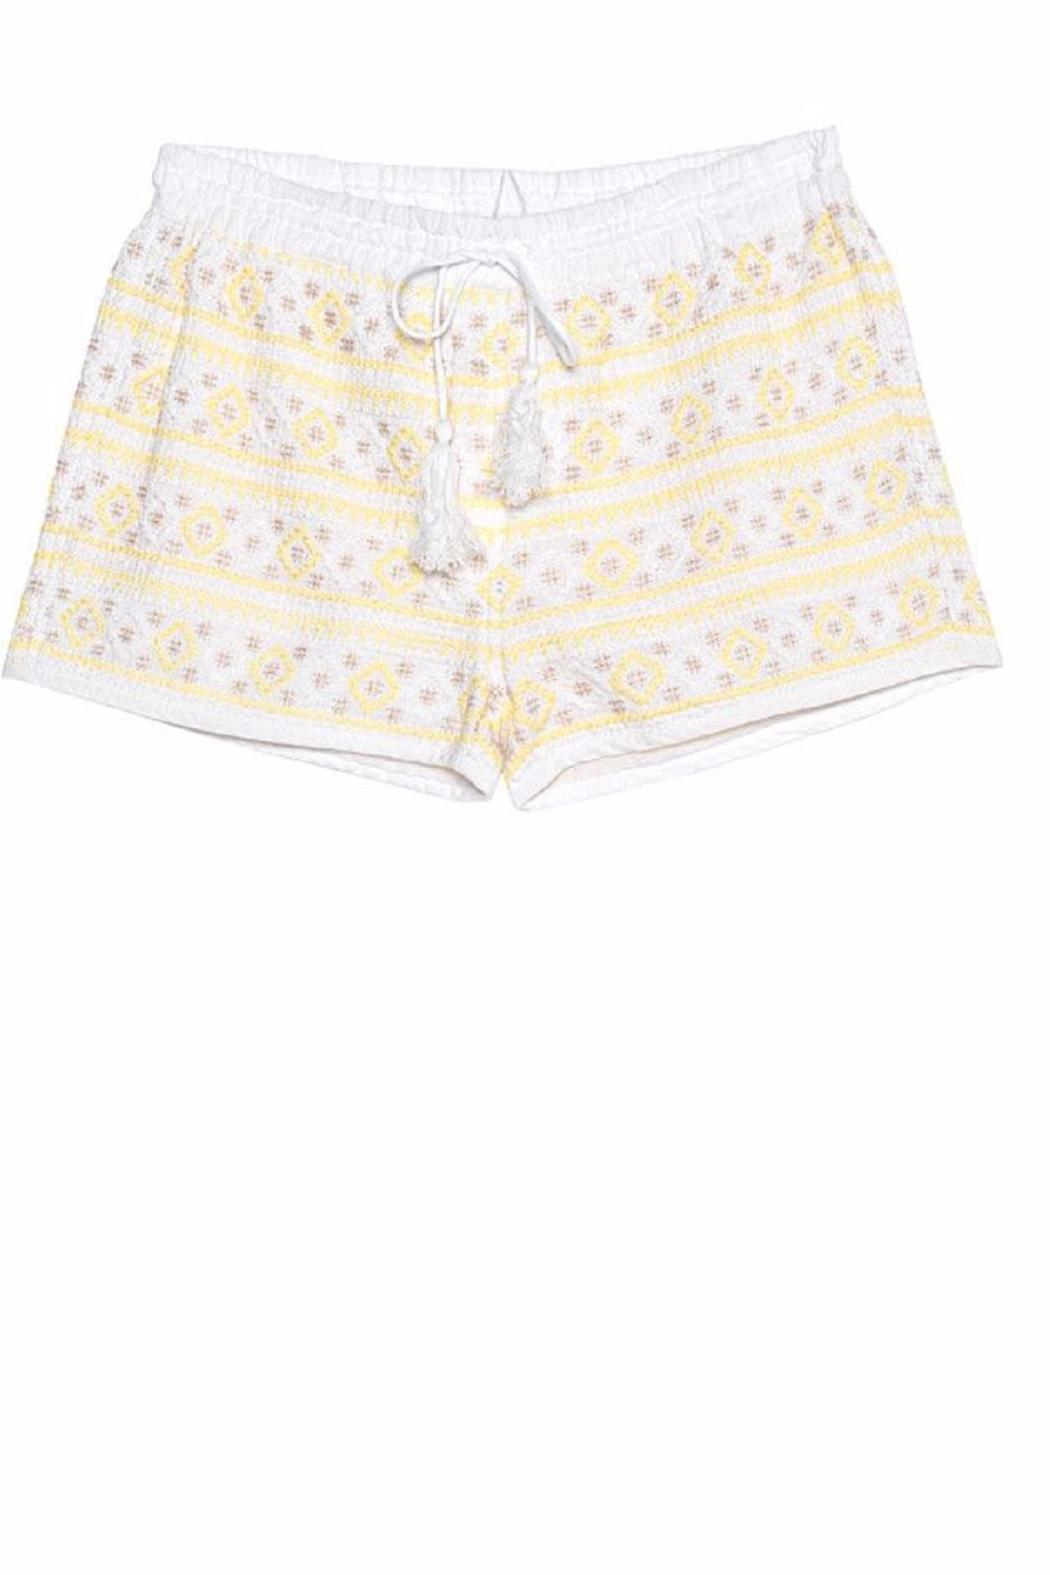 Melissa Odabash Carolina Shorts - Main Image